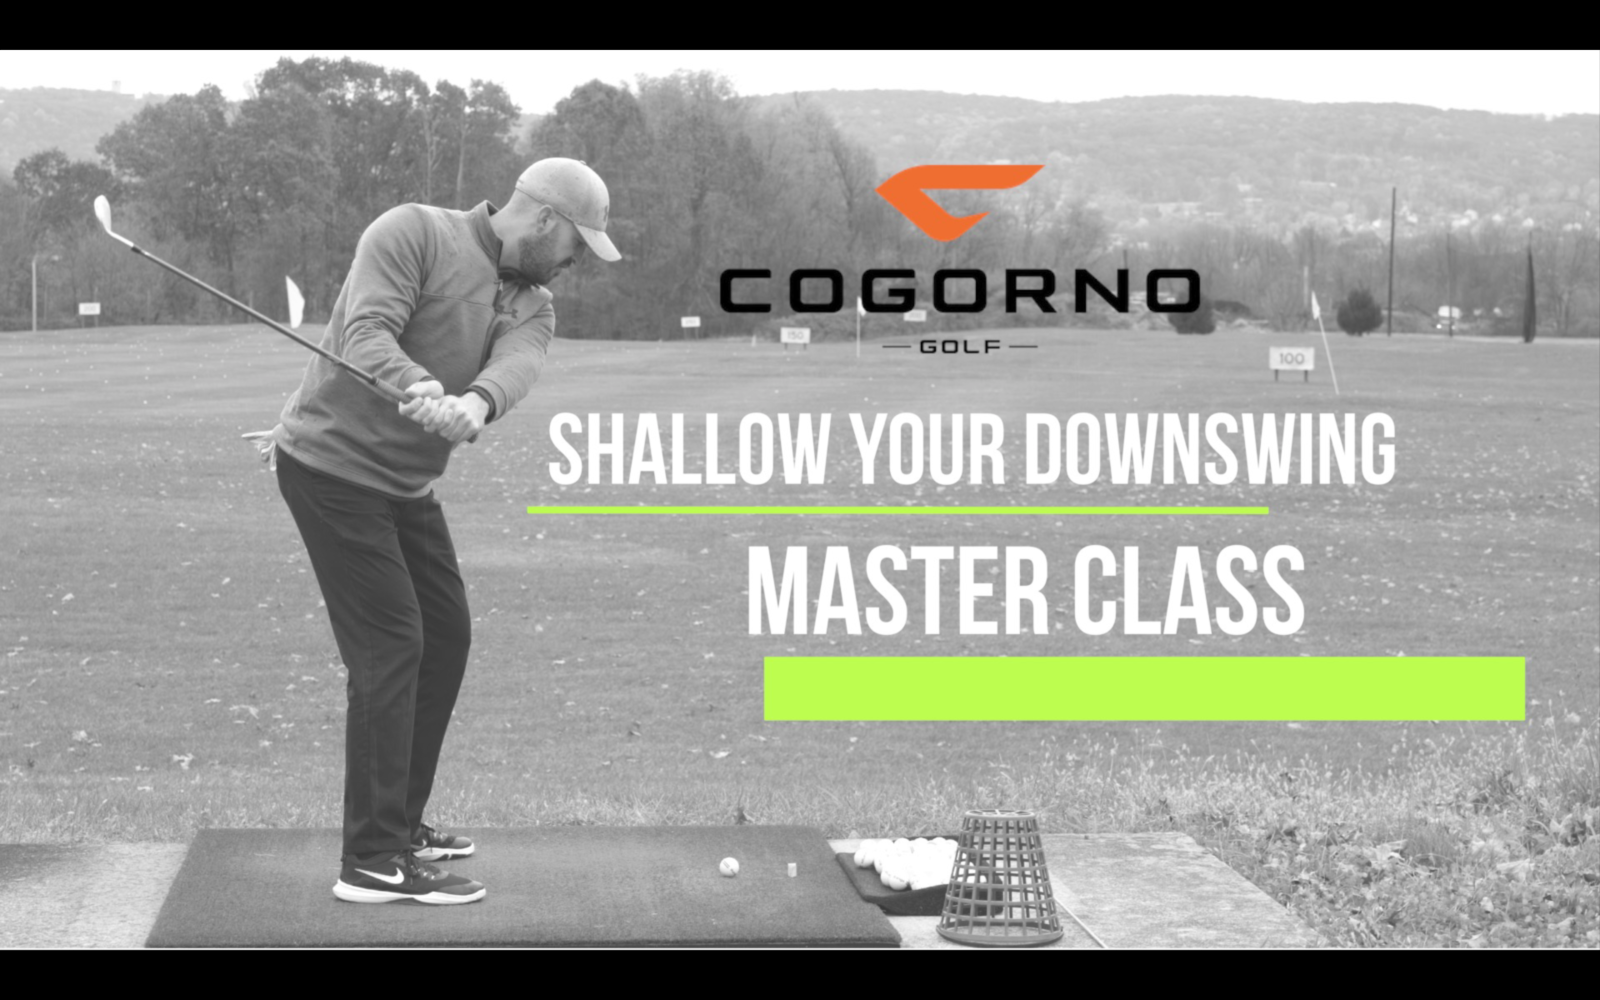 Shallowing Your Downswing Master Class